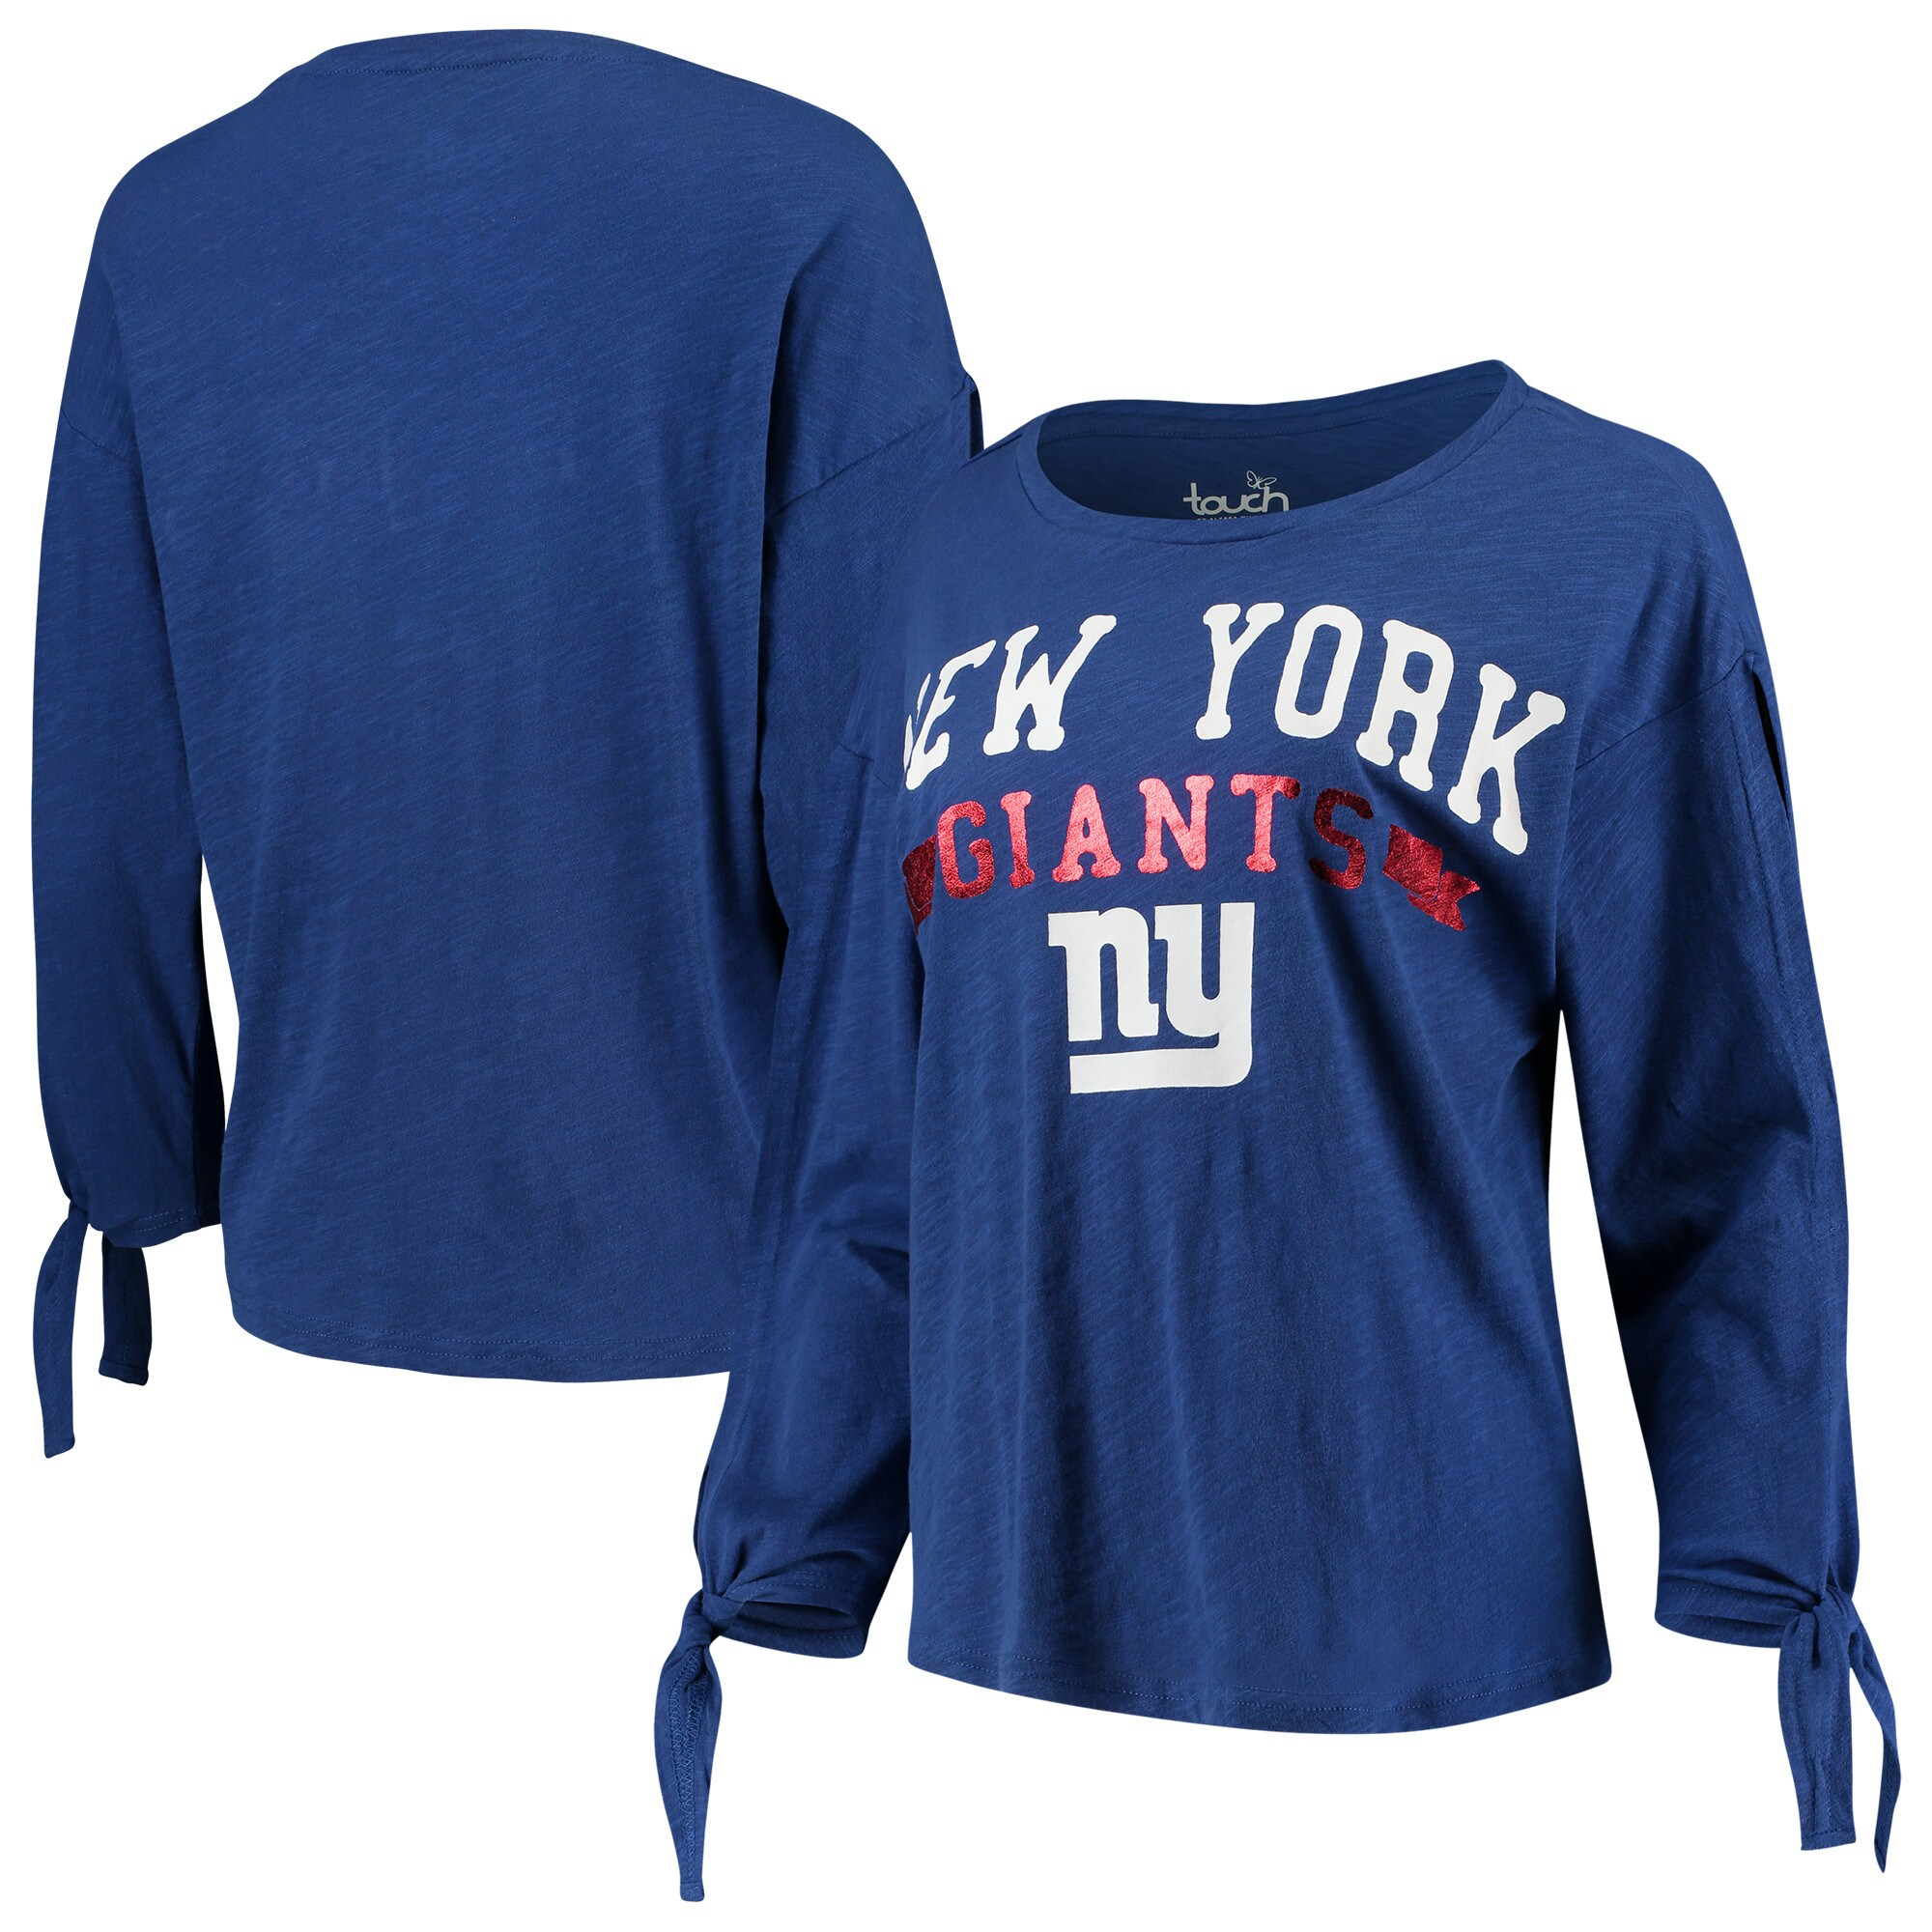 New York Giants Touch by Alyssa Milano Women's On The Fly Long Sleeve T-Shirt - Royal